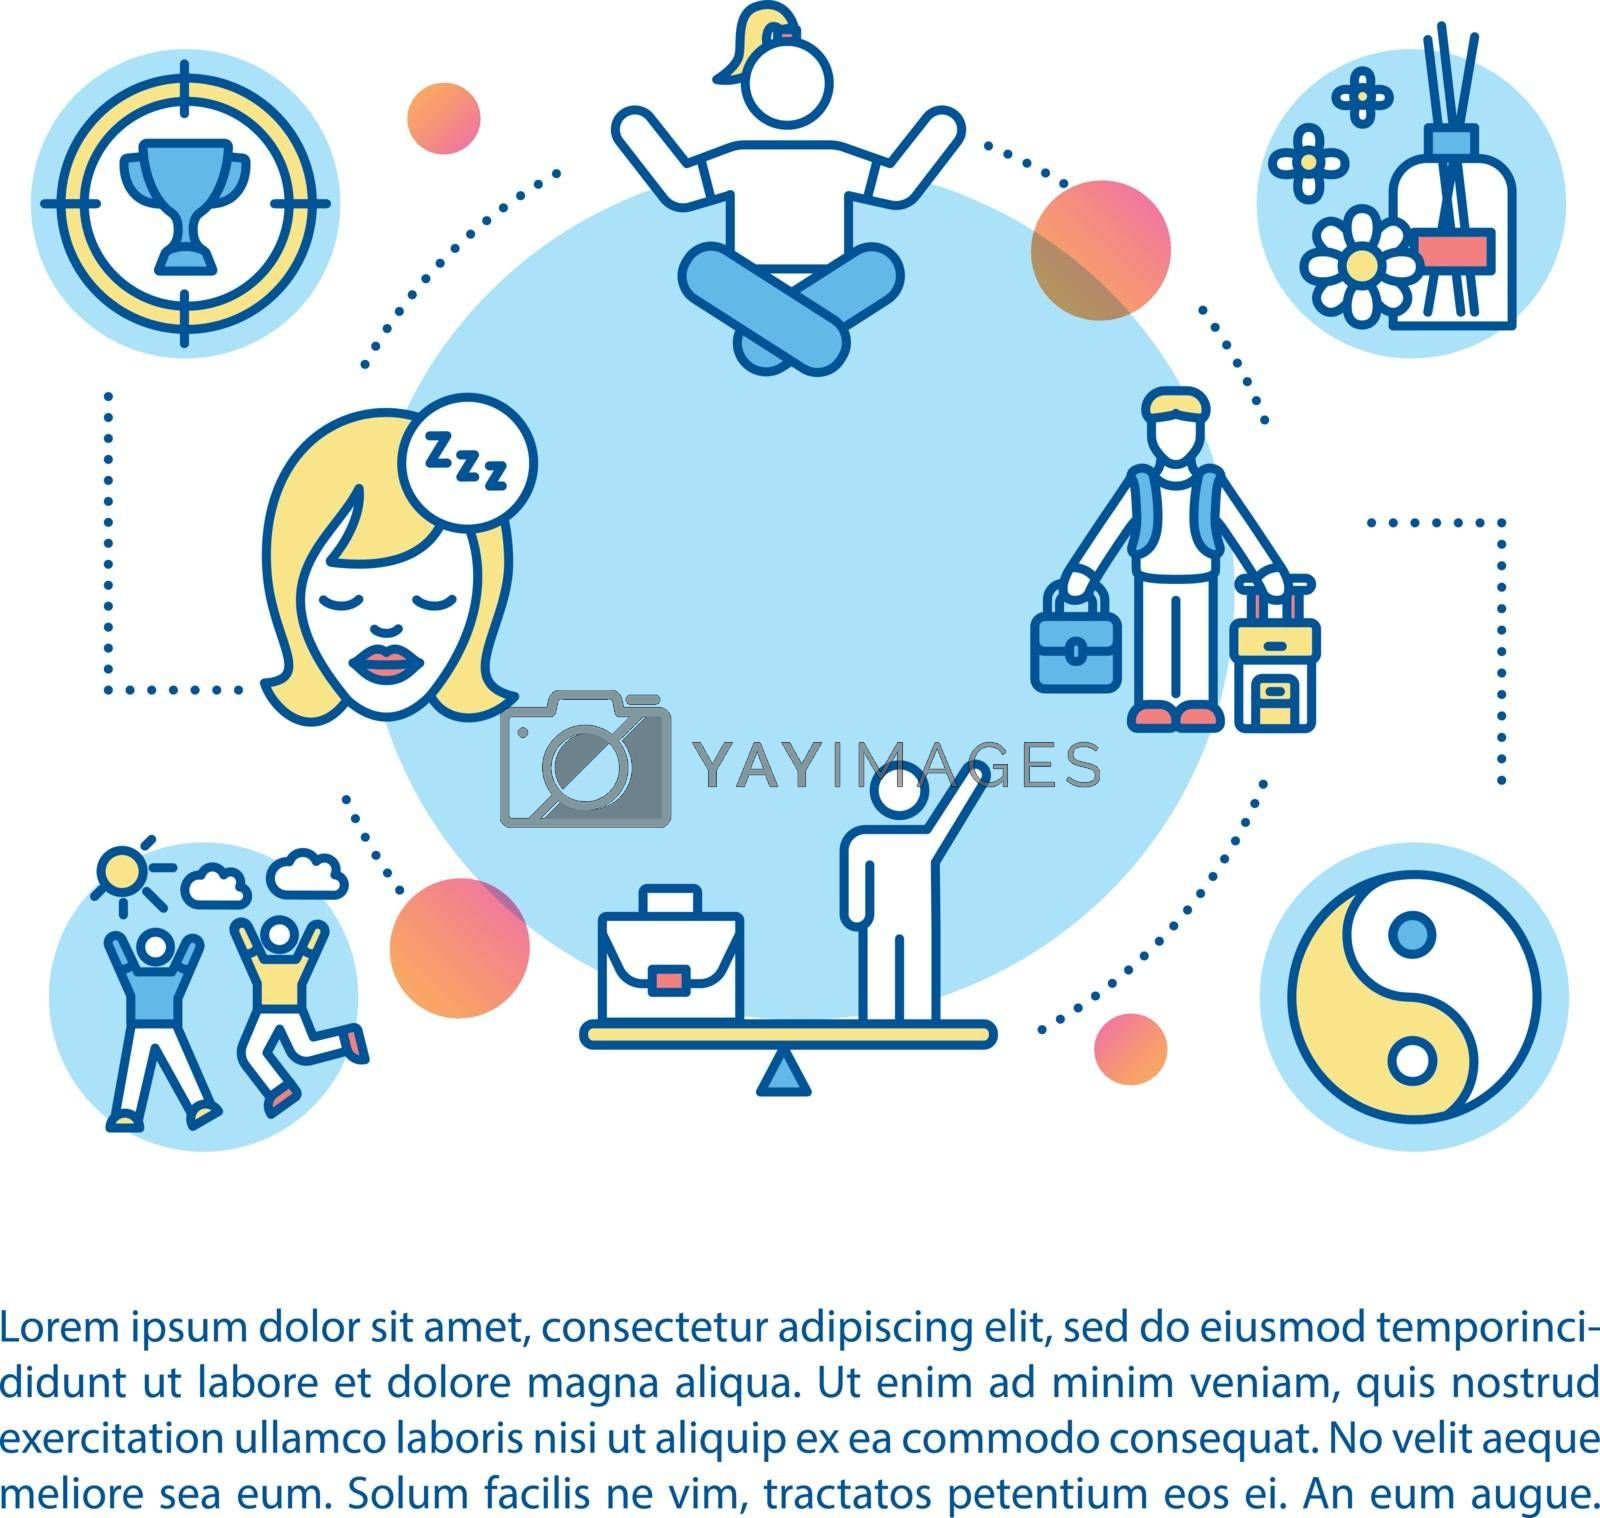 Recreational activities concept icon with text. Vacation. Life and work balance. Hobbies, relaxation. PPT page vector template. Brochure, magazine, booklet design element with linear illustrations